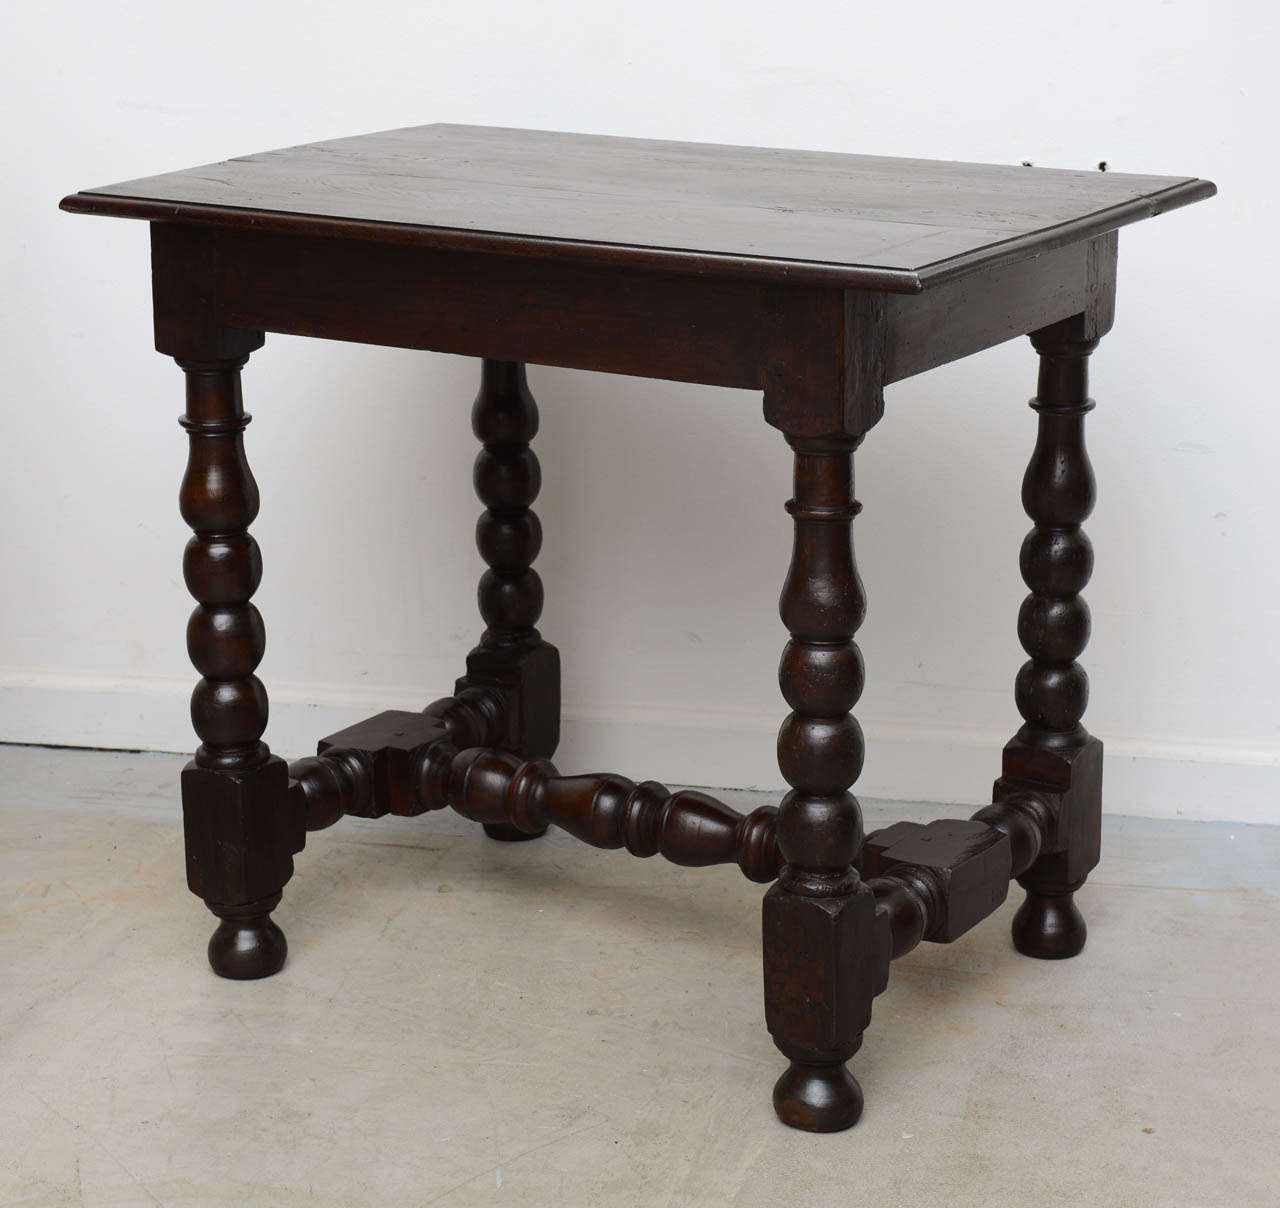 18th century french table at 1stdibs for French furniture designers 20th century